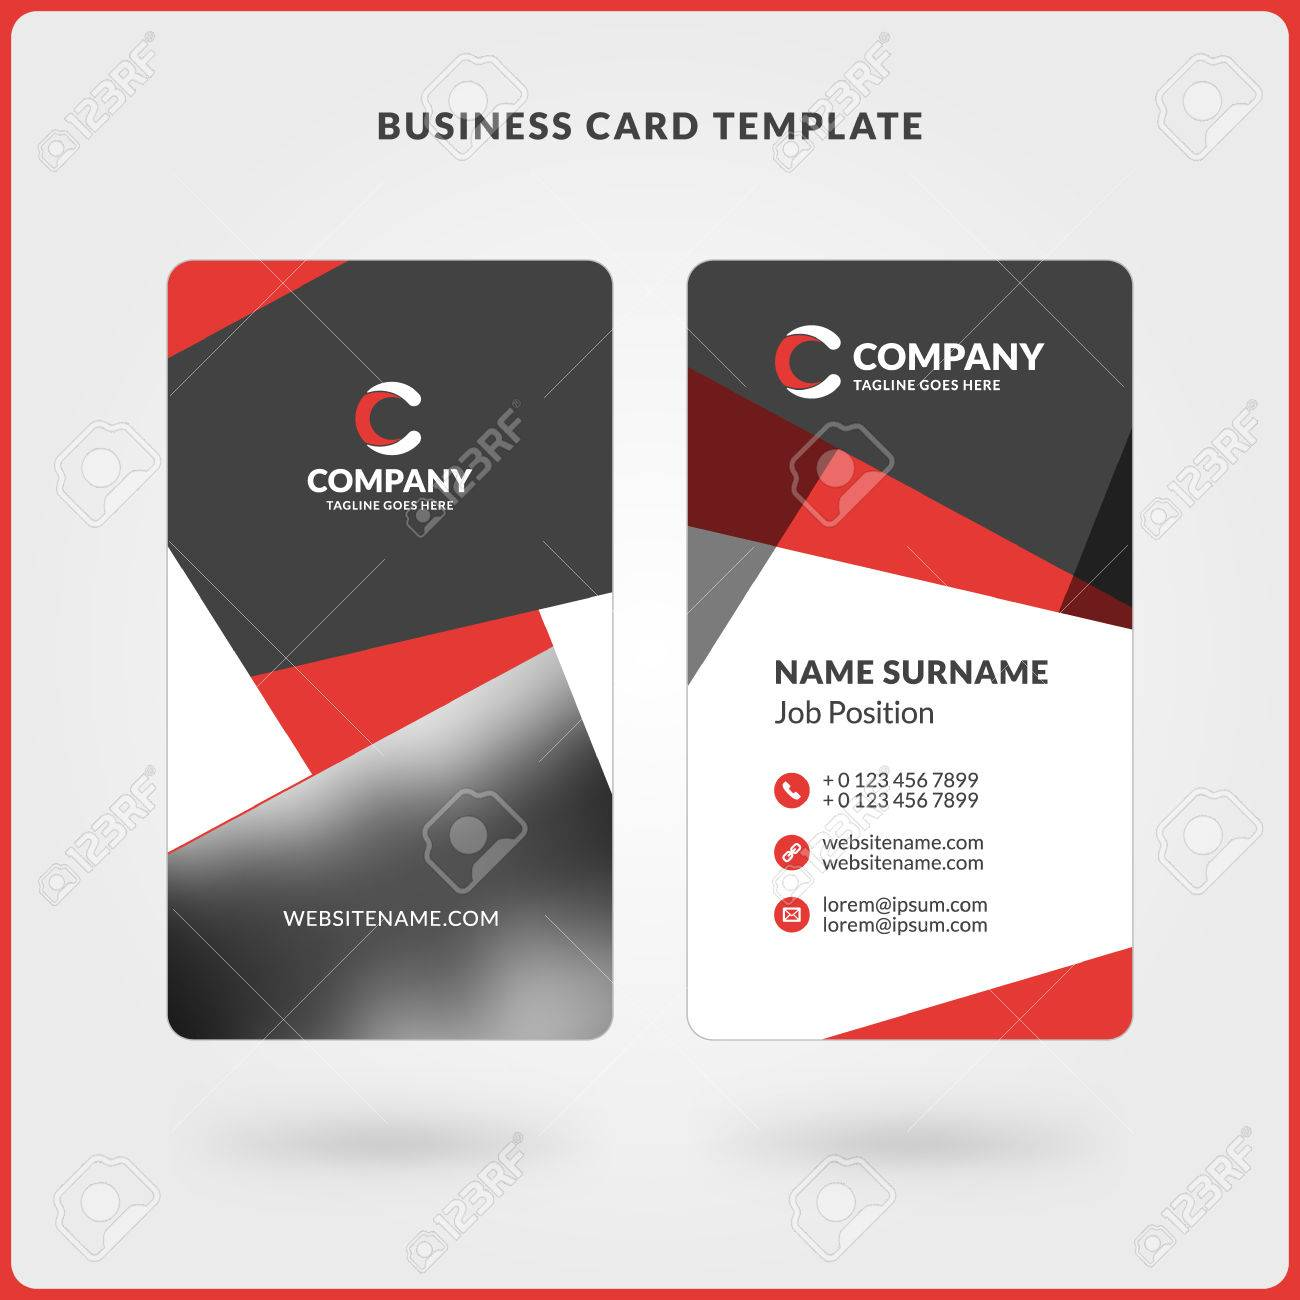 Double sided business cards roho4senses double sided business cards reheart